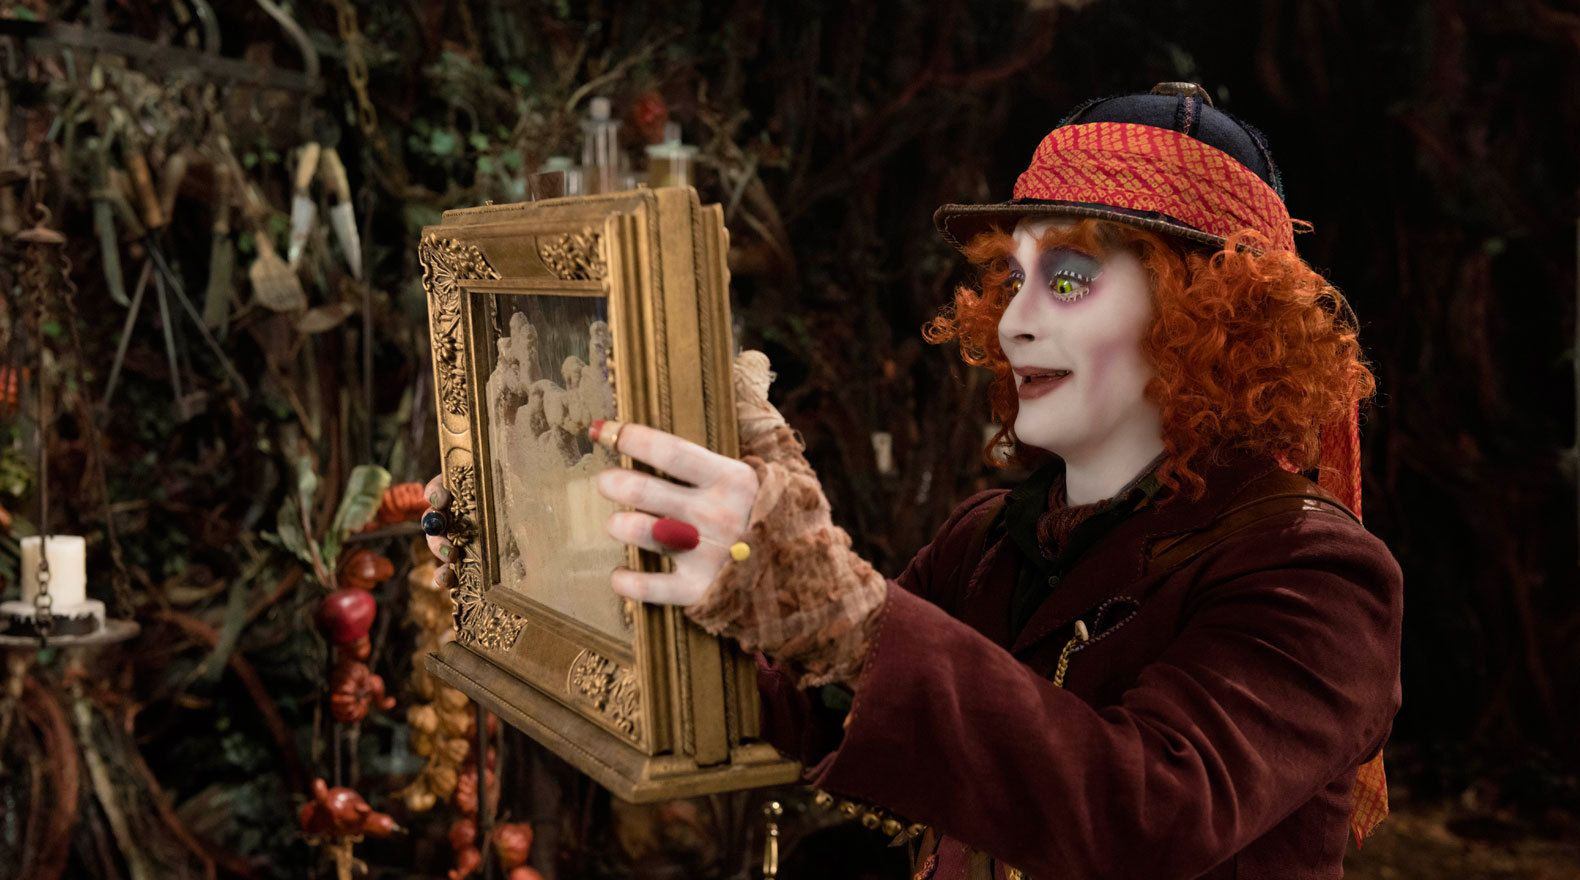 Mad Hatters Ant Farm (Through the looking glass). Wonderland